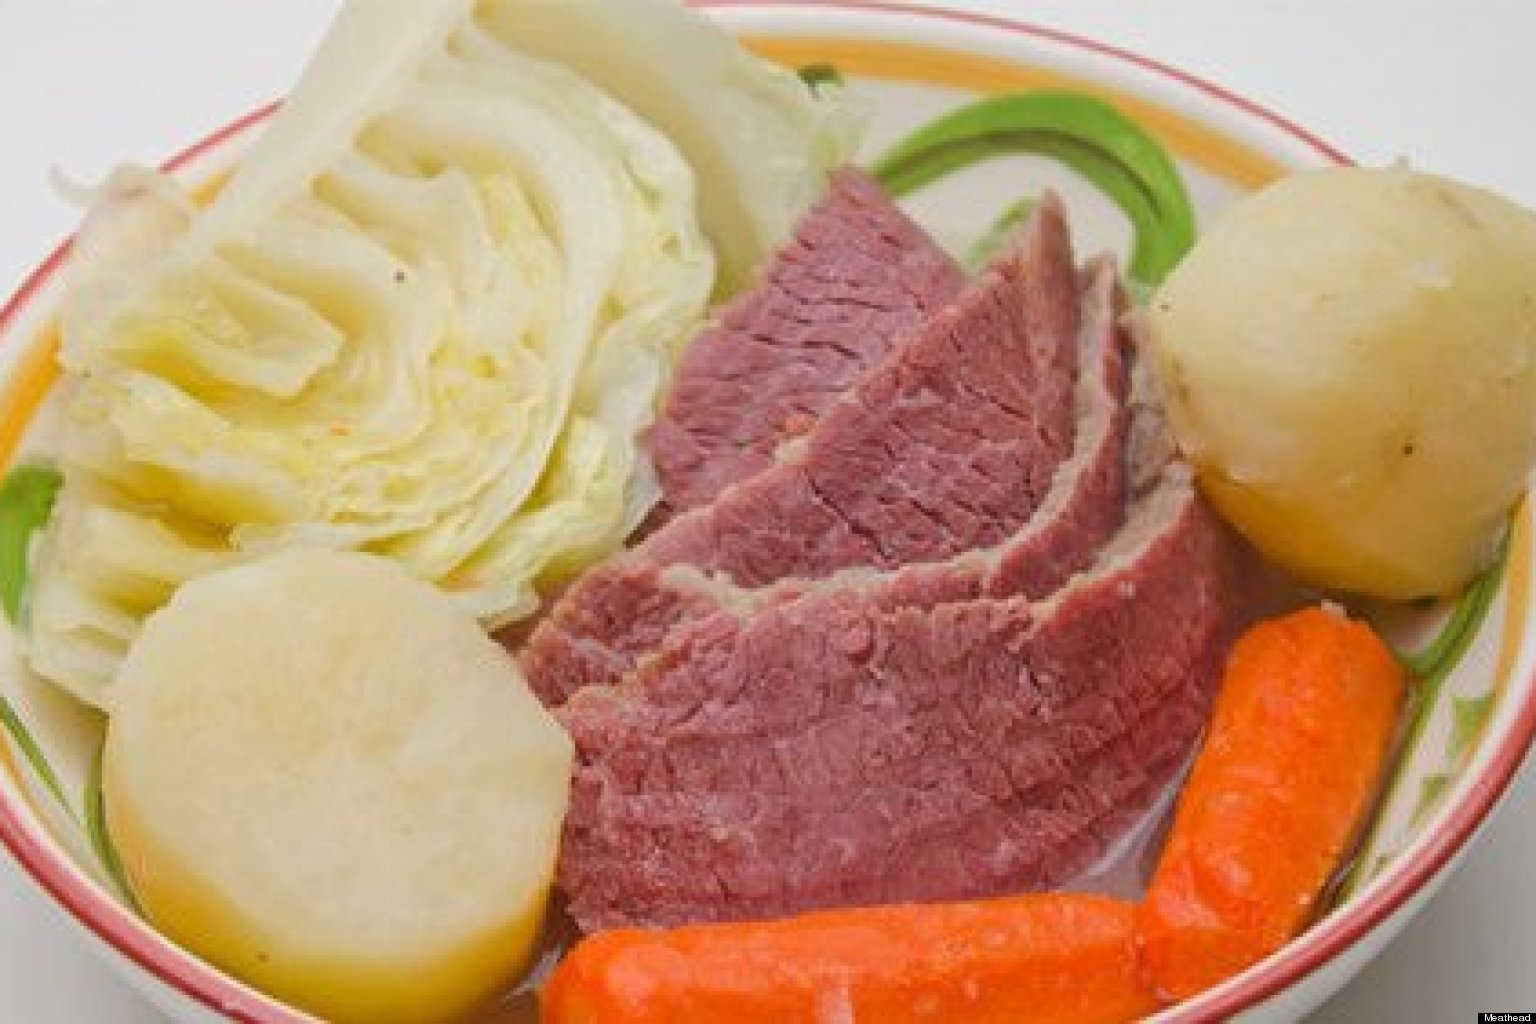 Corned Beef And Cabbage: Let's Do It Right! | Meathead